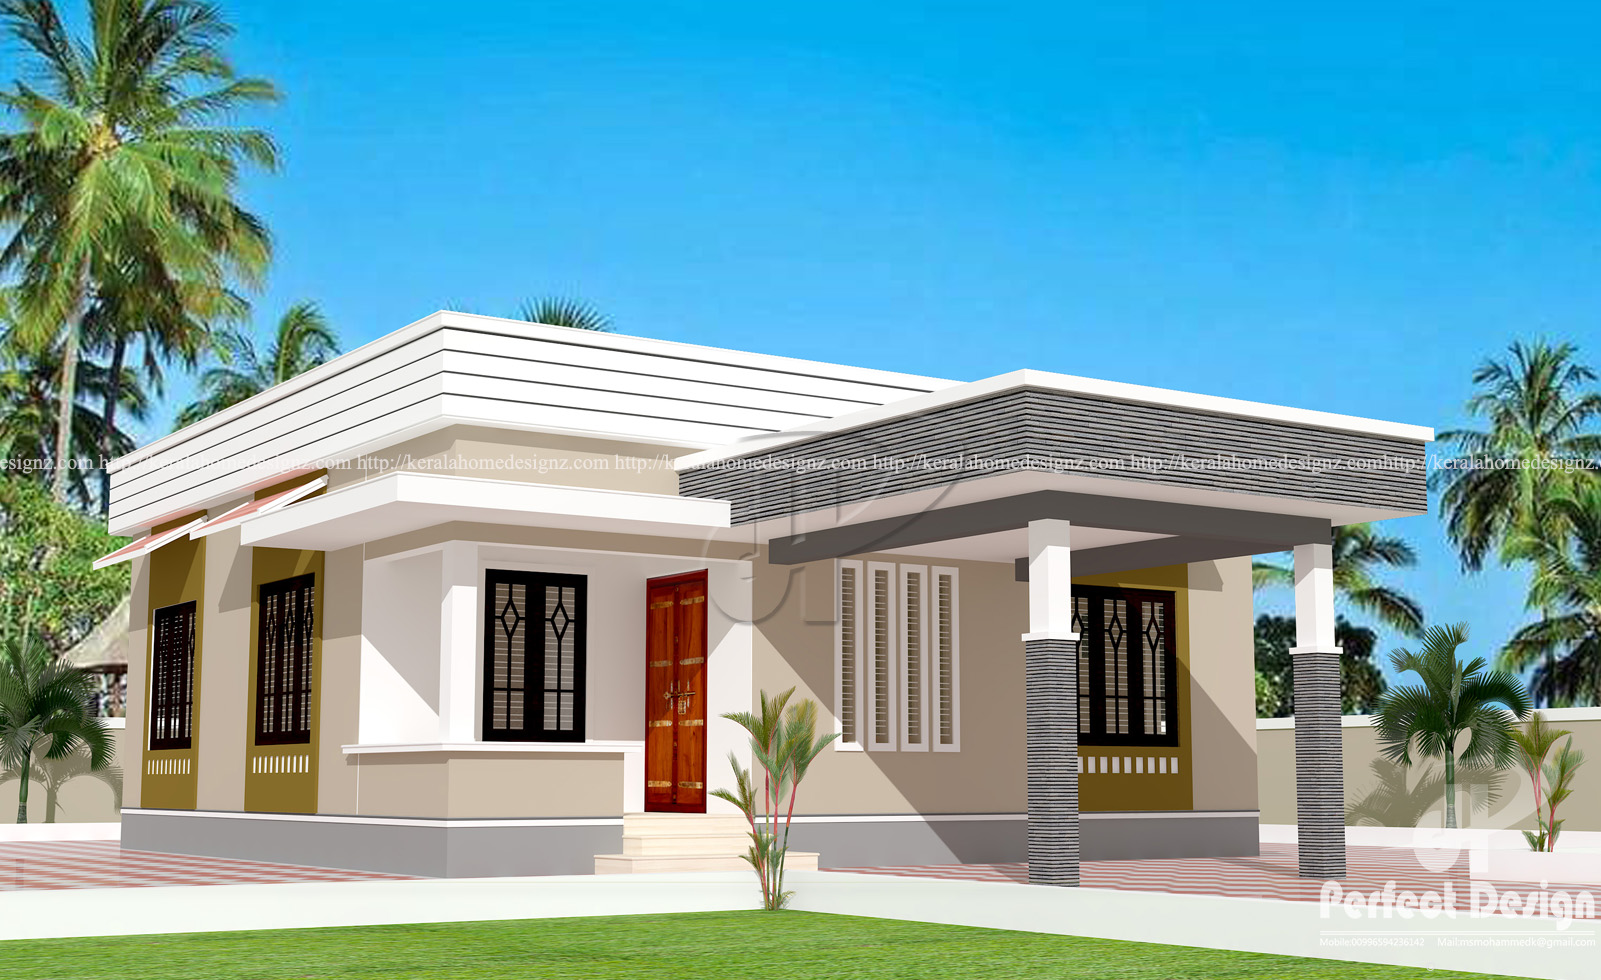 829 sq ft low cost home designs kerala home design for House and design